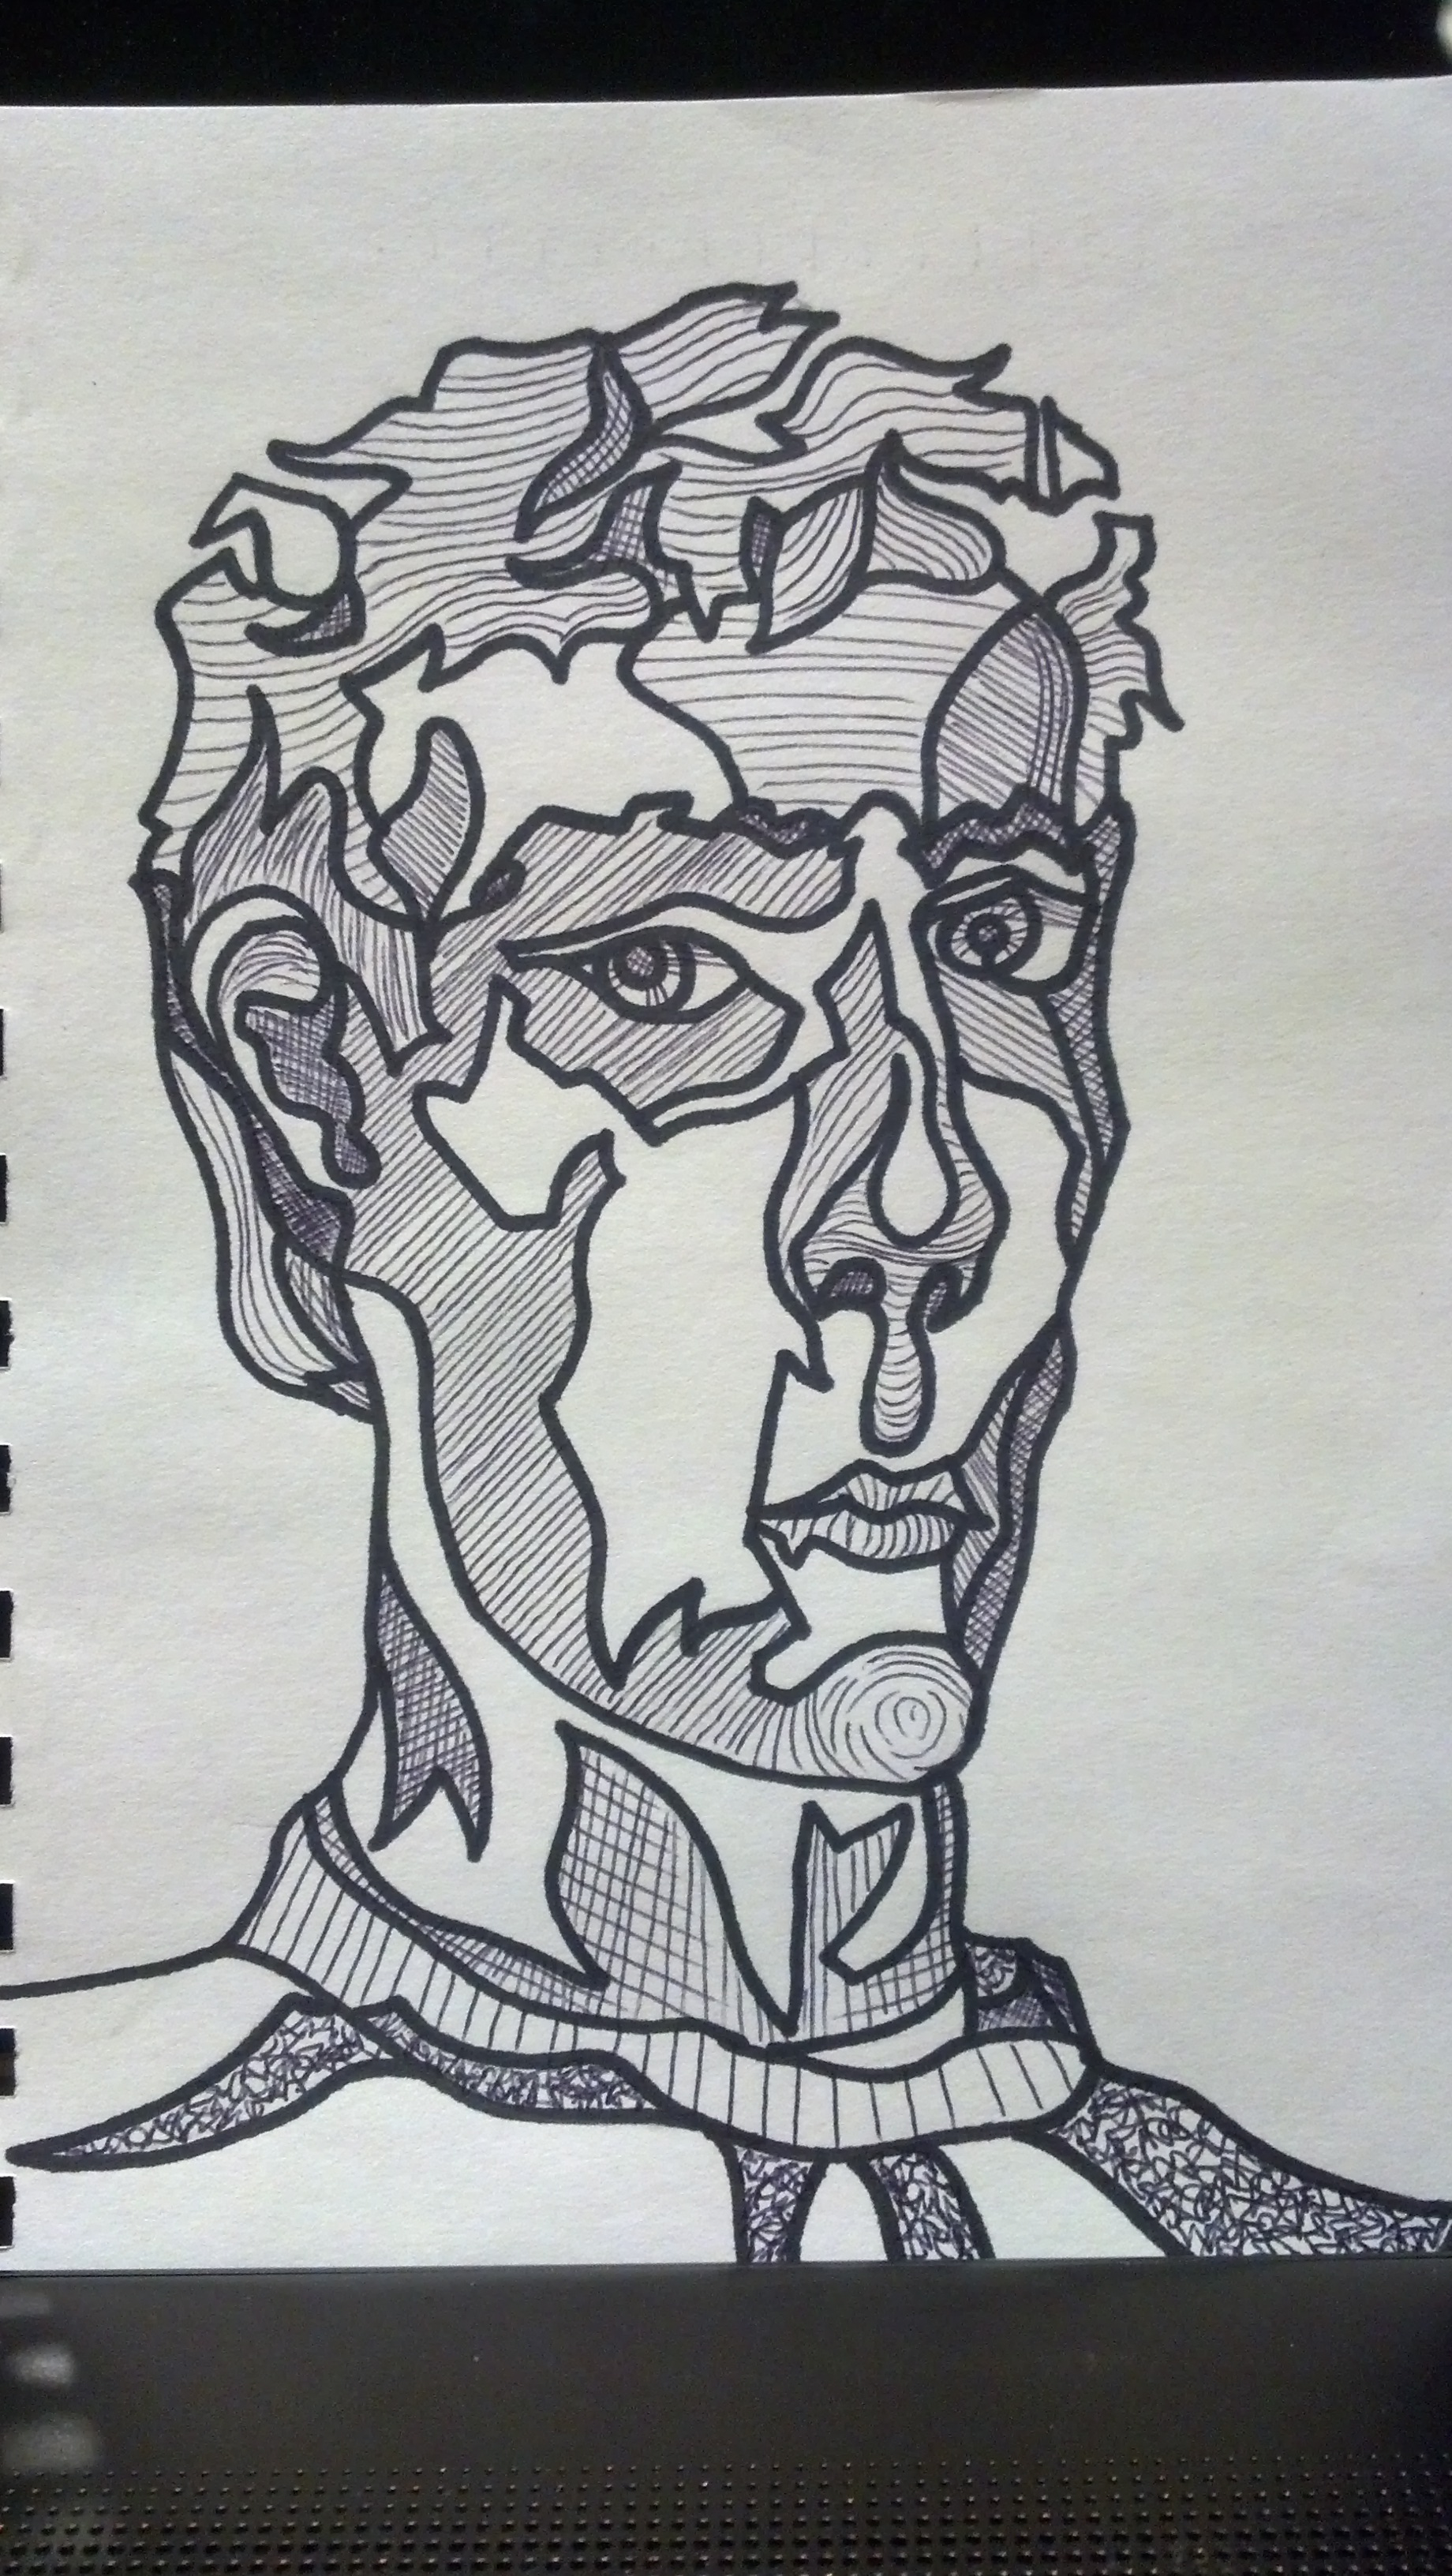 Contour Line Drawing Self Portrait : Day to in the visual arts with frank korb contour